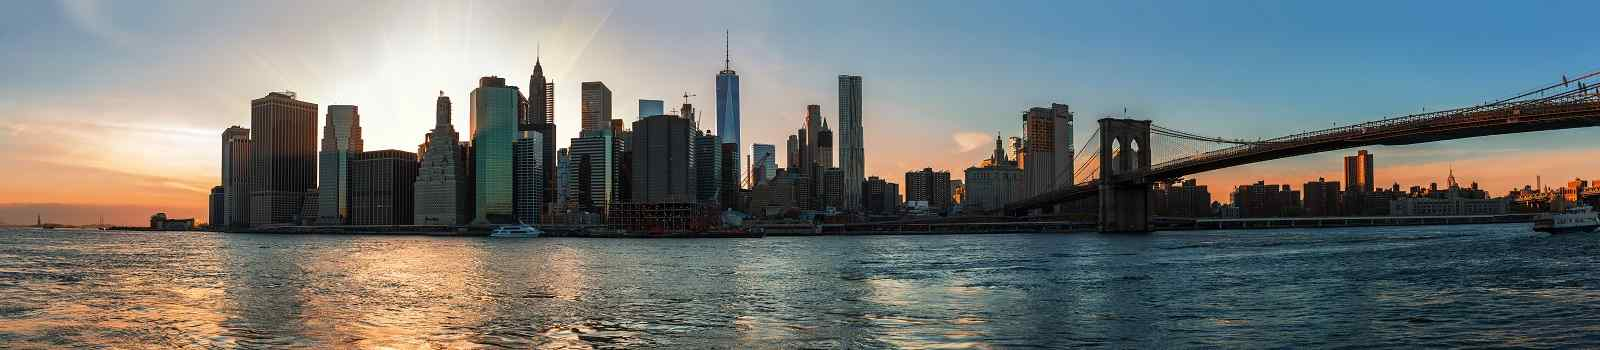 NYC-MARATHON Panorama of Manhattan Skyline and Brooklyn Bridge during sunset seen from Brooklyn Bridge Park shutterstock 536174290